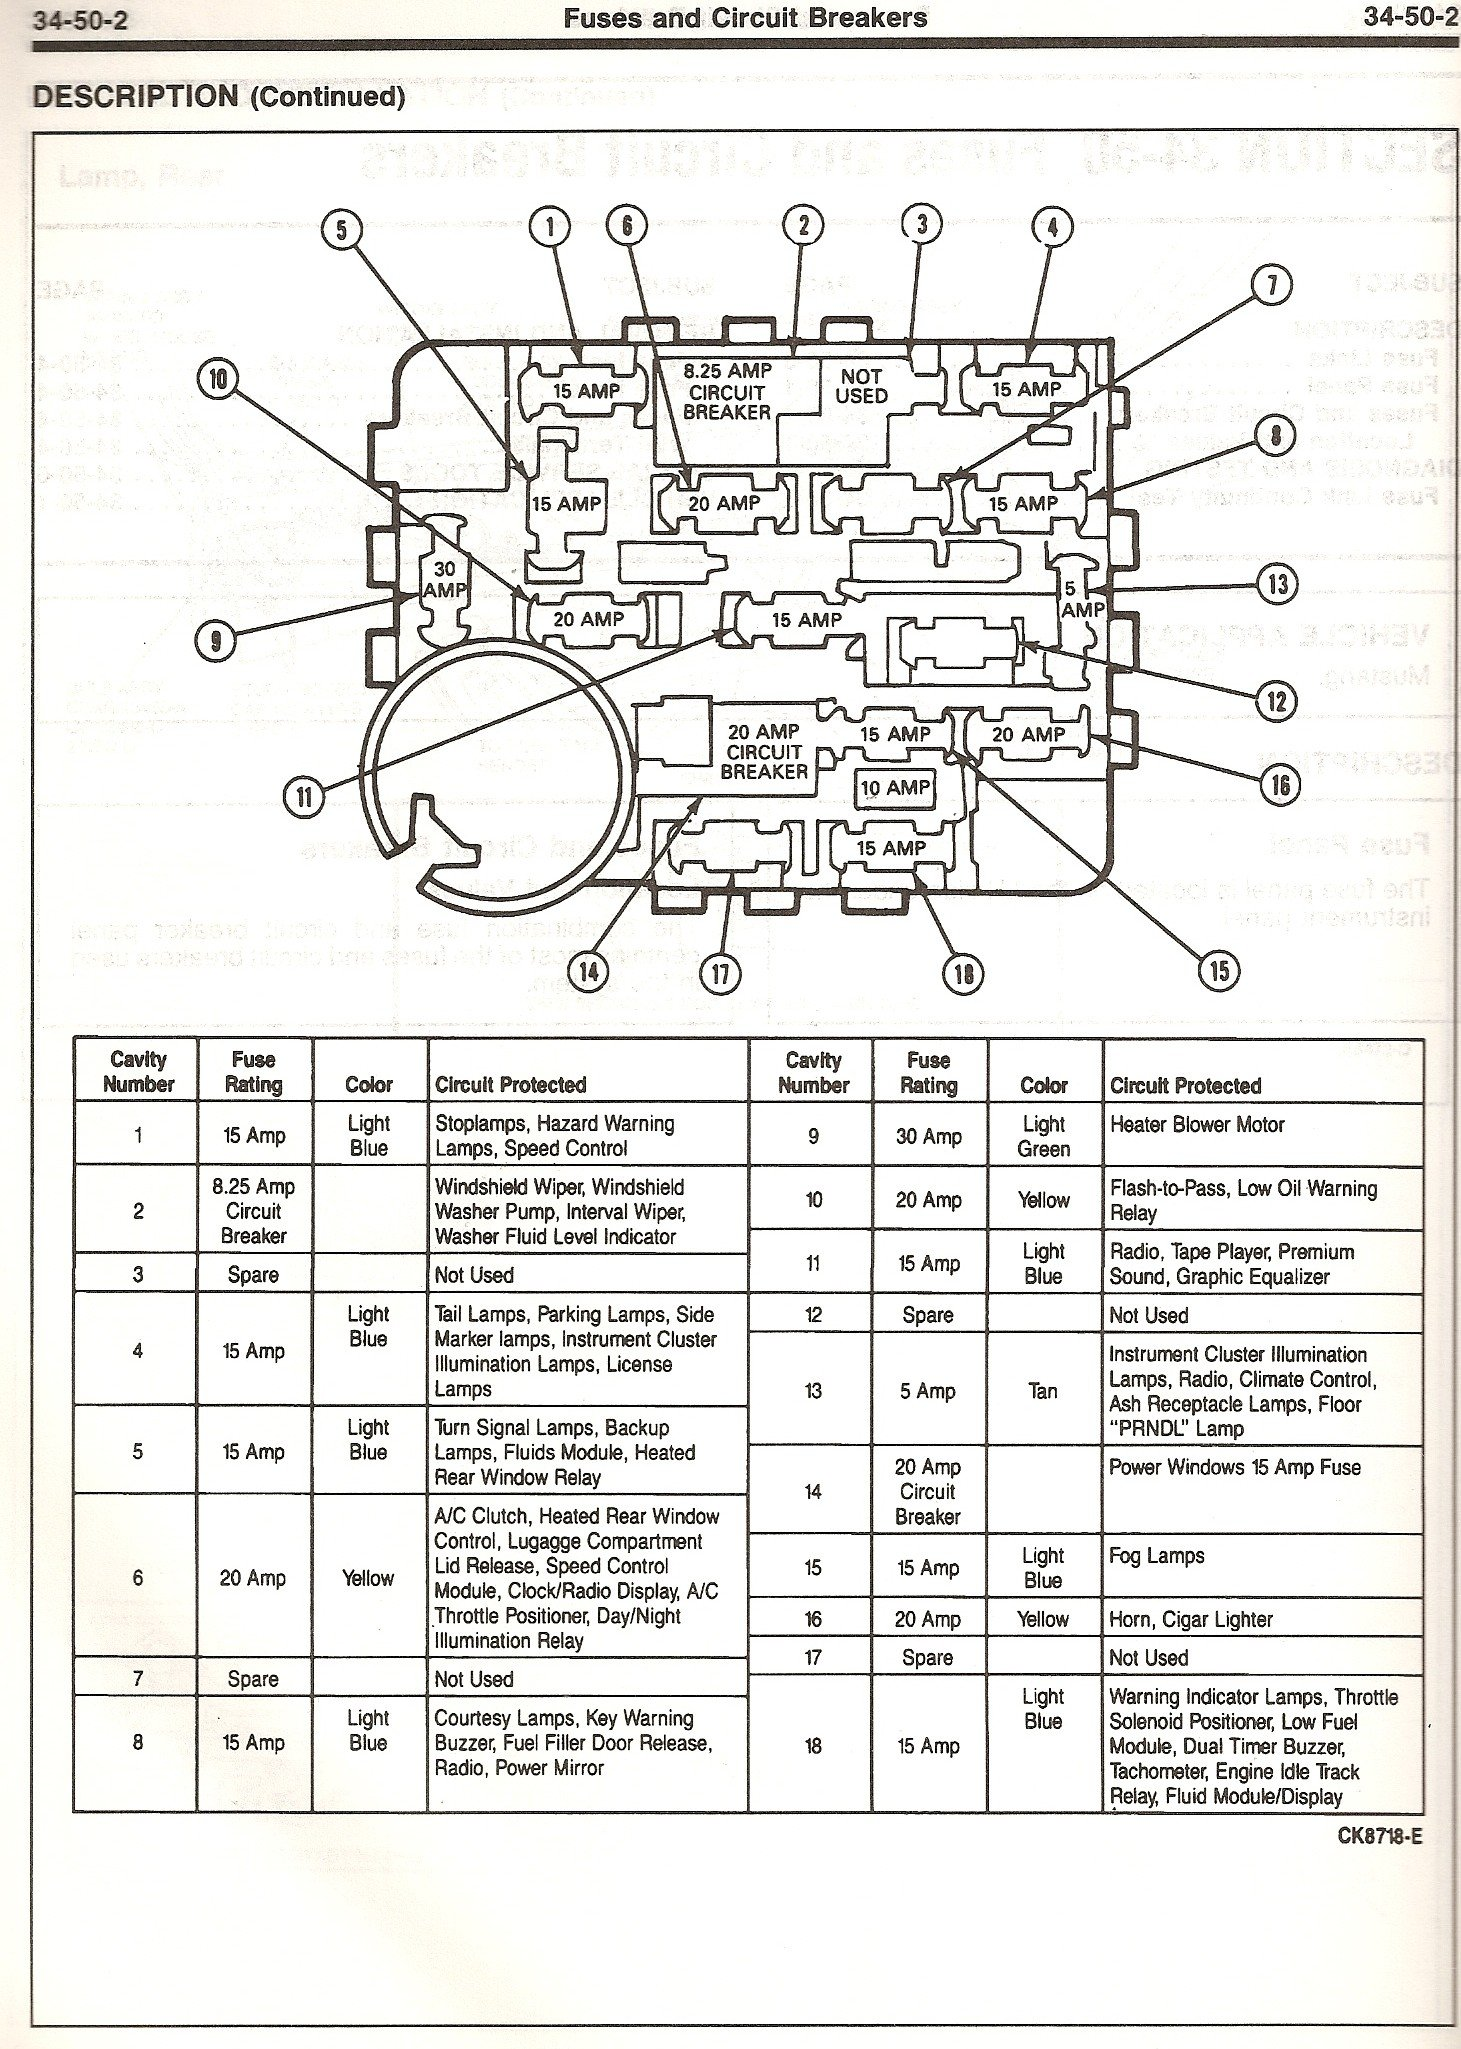 2008 ford explorer fuse box diagram. Black Bedroom Furniture Sets. Home Design Ideas